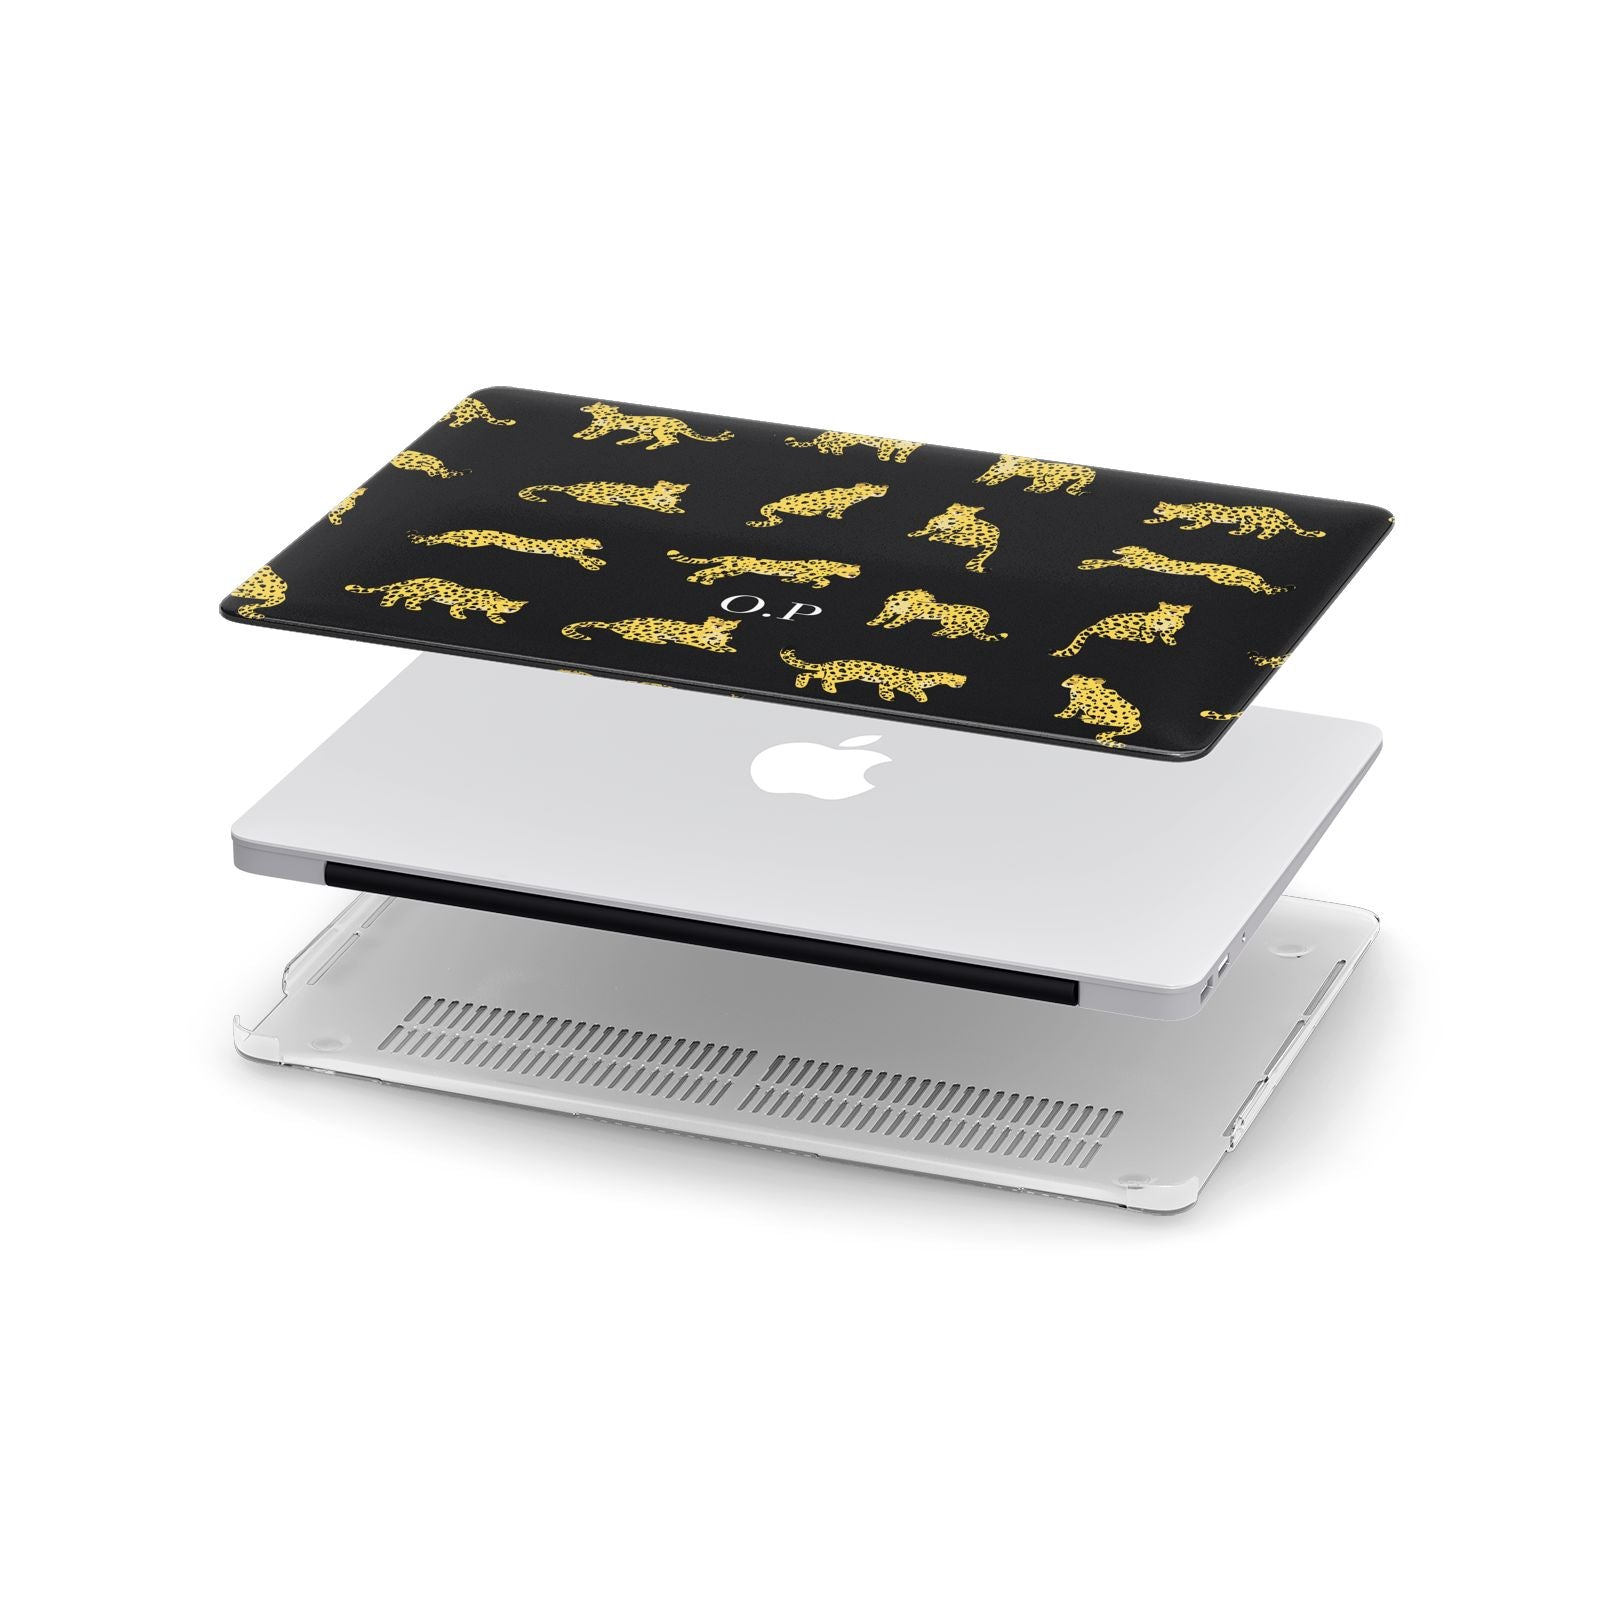 Prowling Leopard Apple MacBook Case in Detail